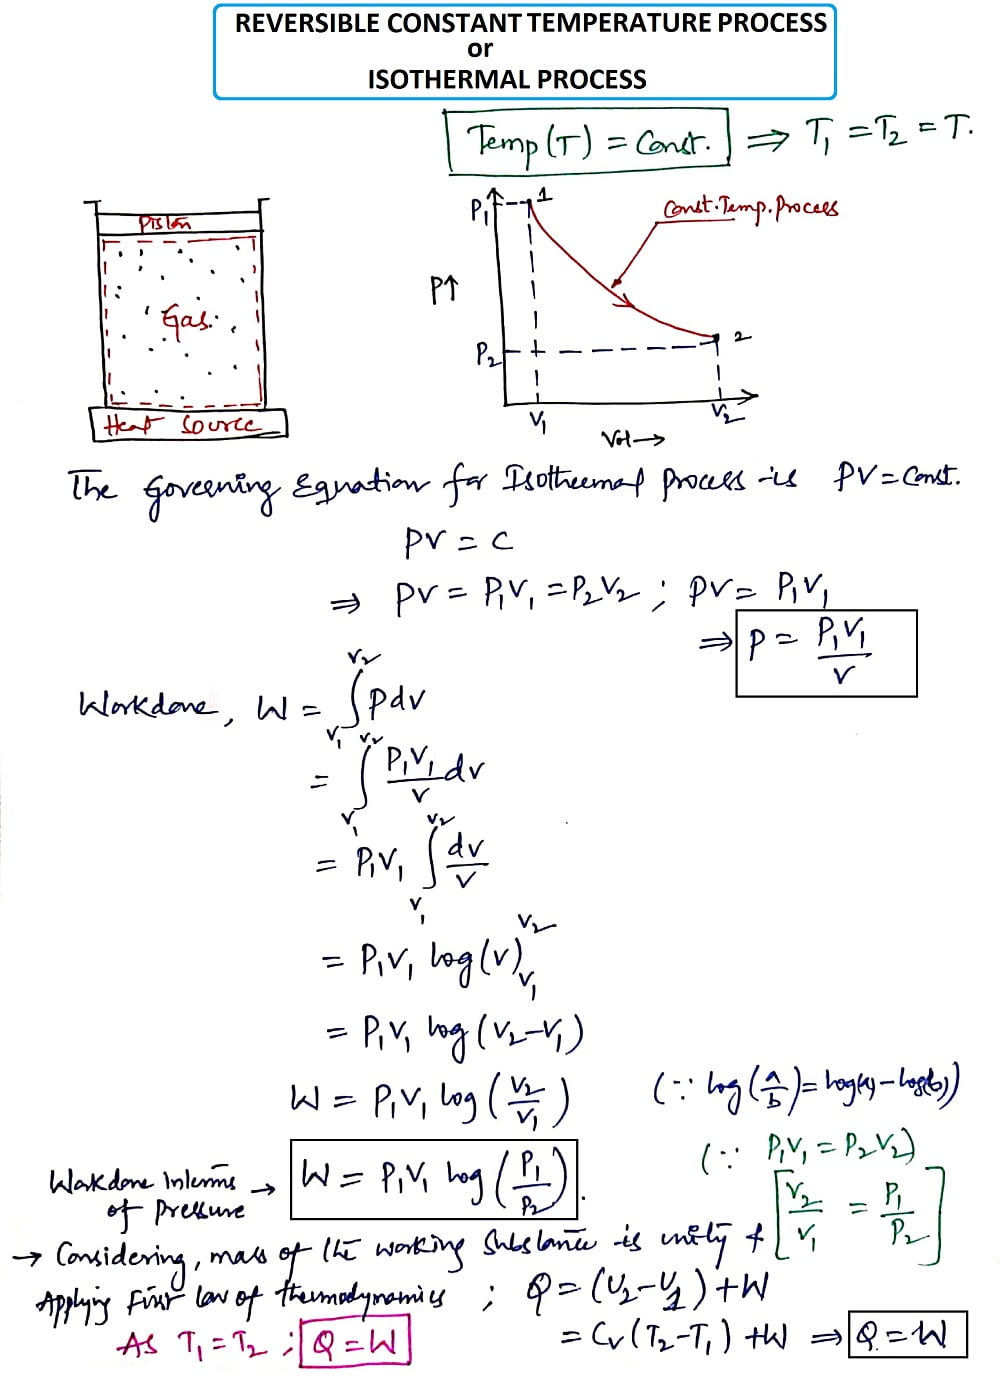 Isothermal process derivation